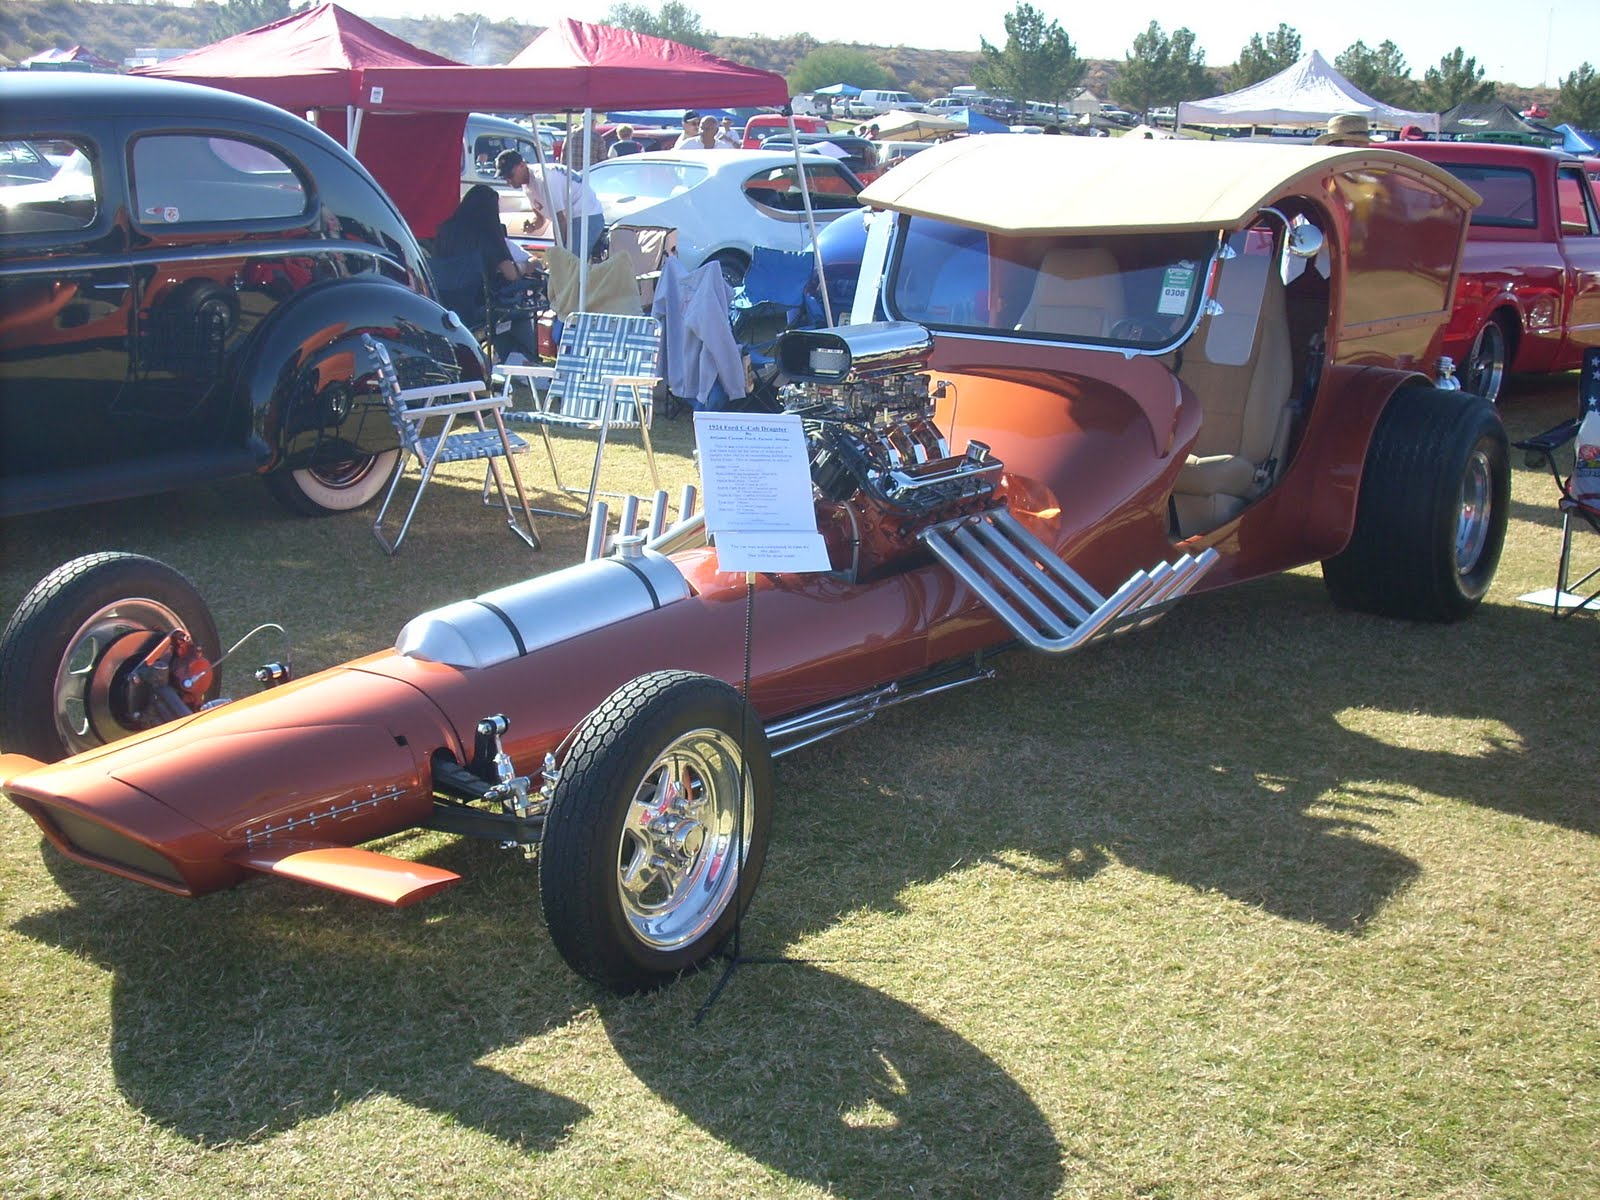 Heritage Tour: Goodguys South West National Hot Rod Show